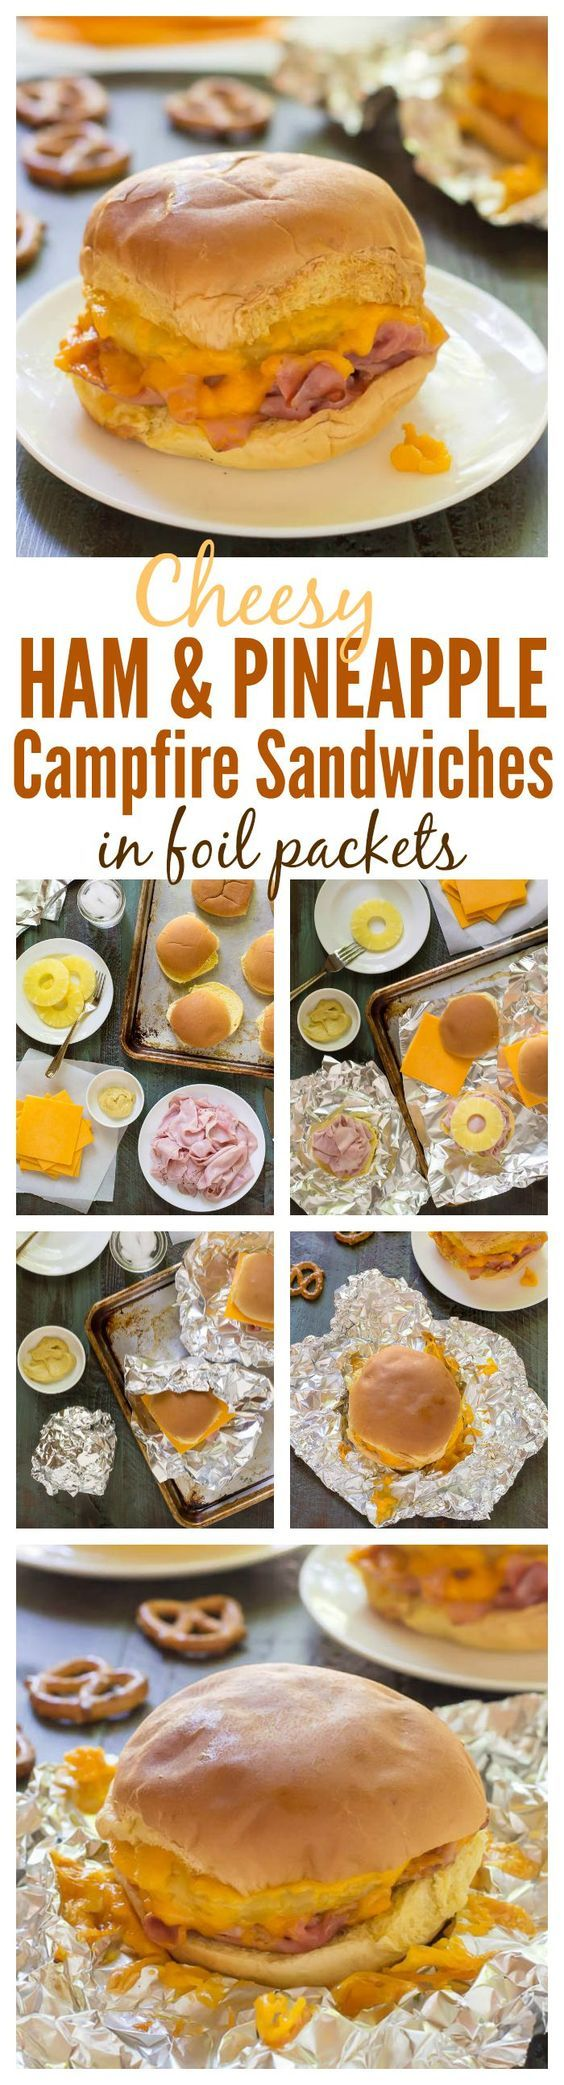 Cheesy Ham and Pineapple Campfire Sandwiches. An easy foil recipe that is our family's favorite campfire food! Recipe at wellplated.com @wellplated